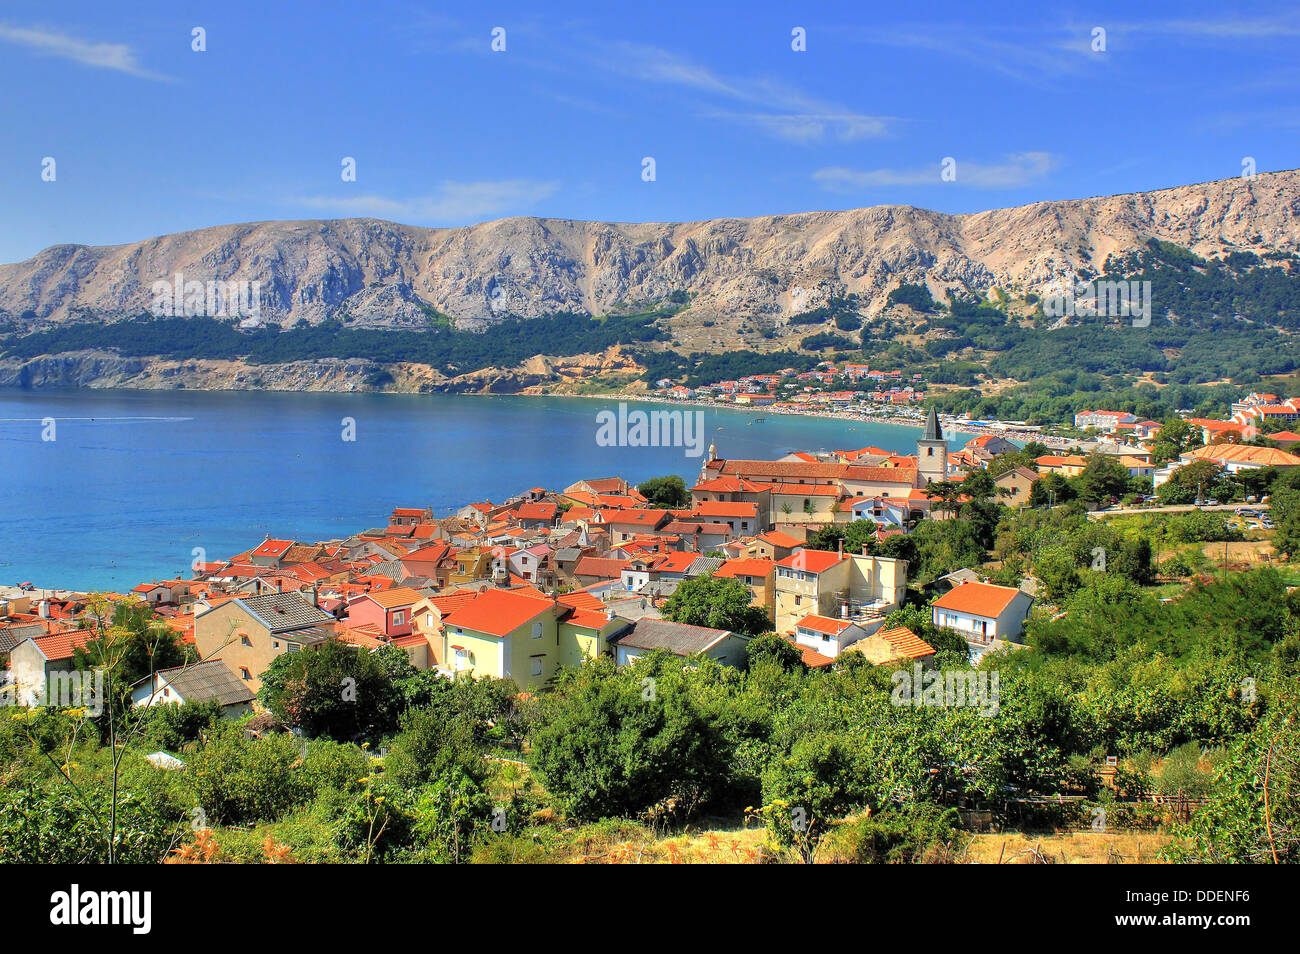 Town of Baska nature and architecture, Island of Krk, Croatia - Stock Image